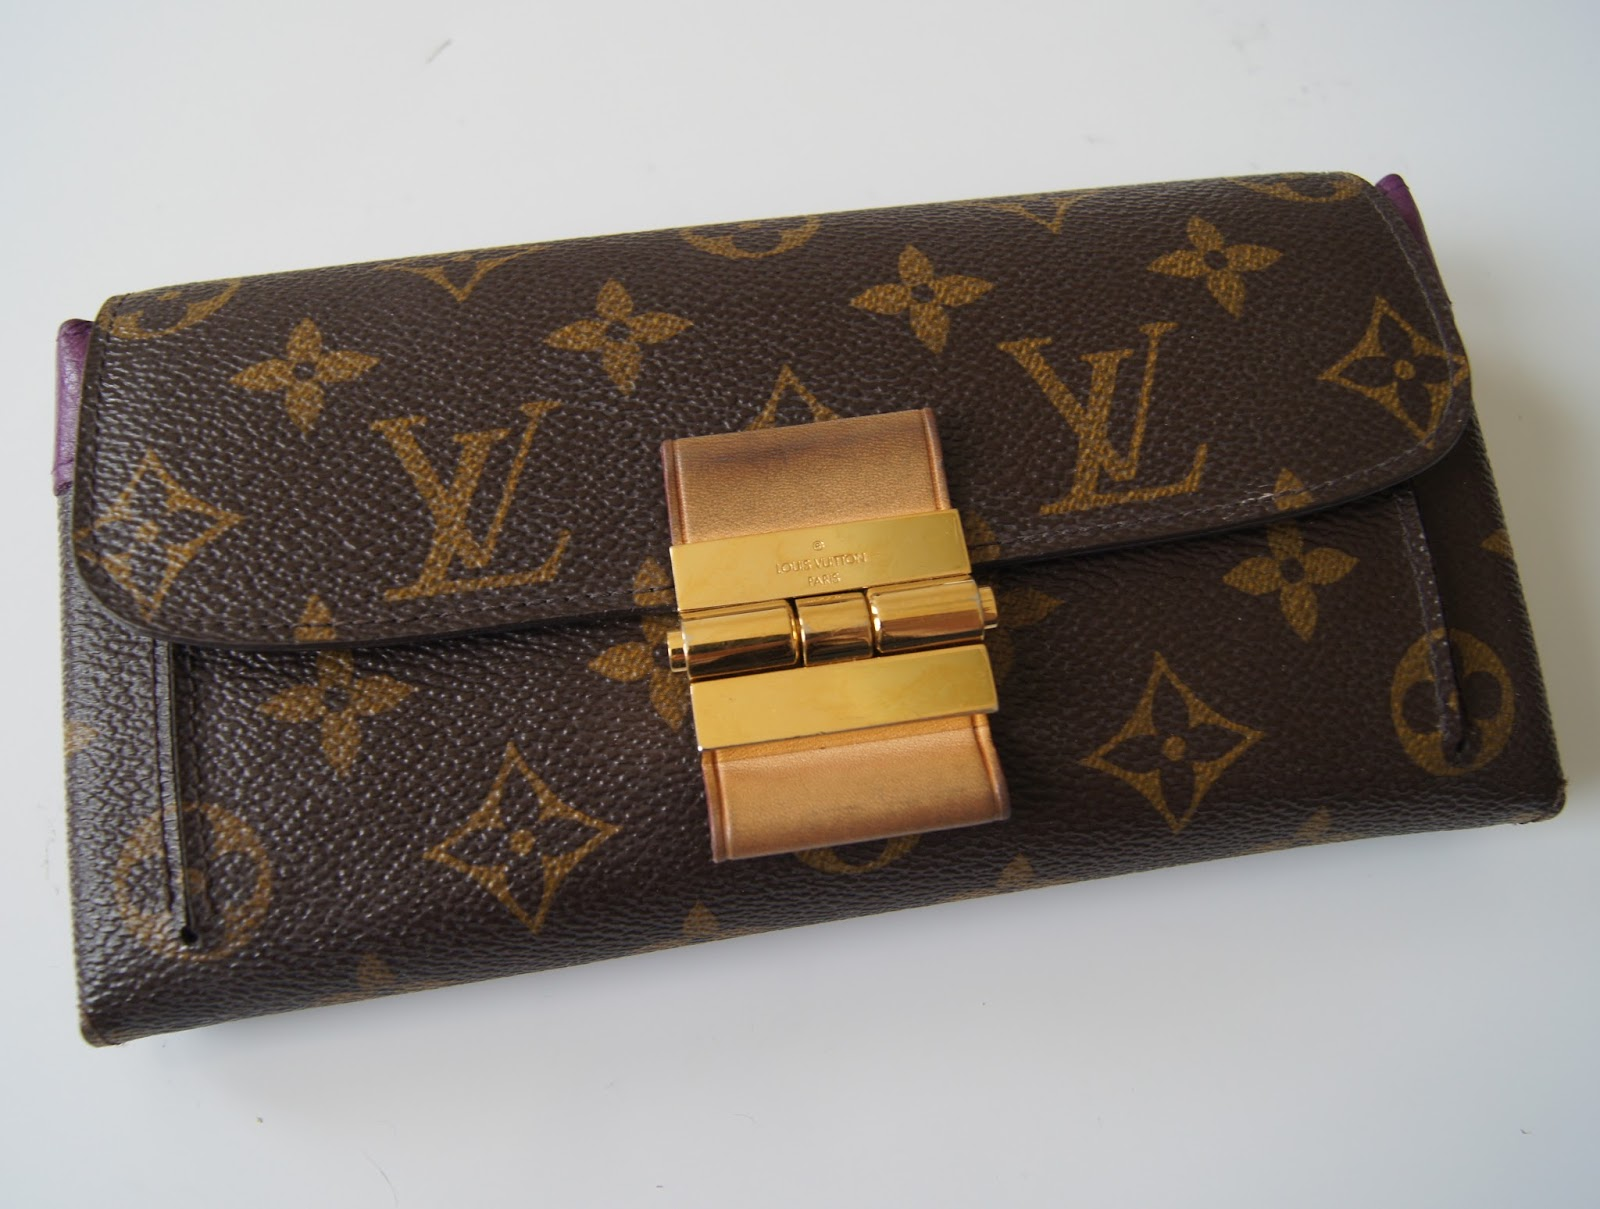 Louis Vuitton Elysee wallet